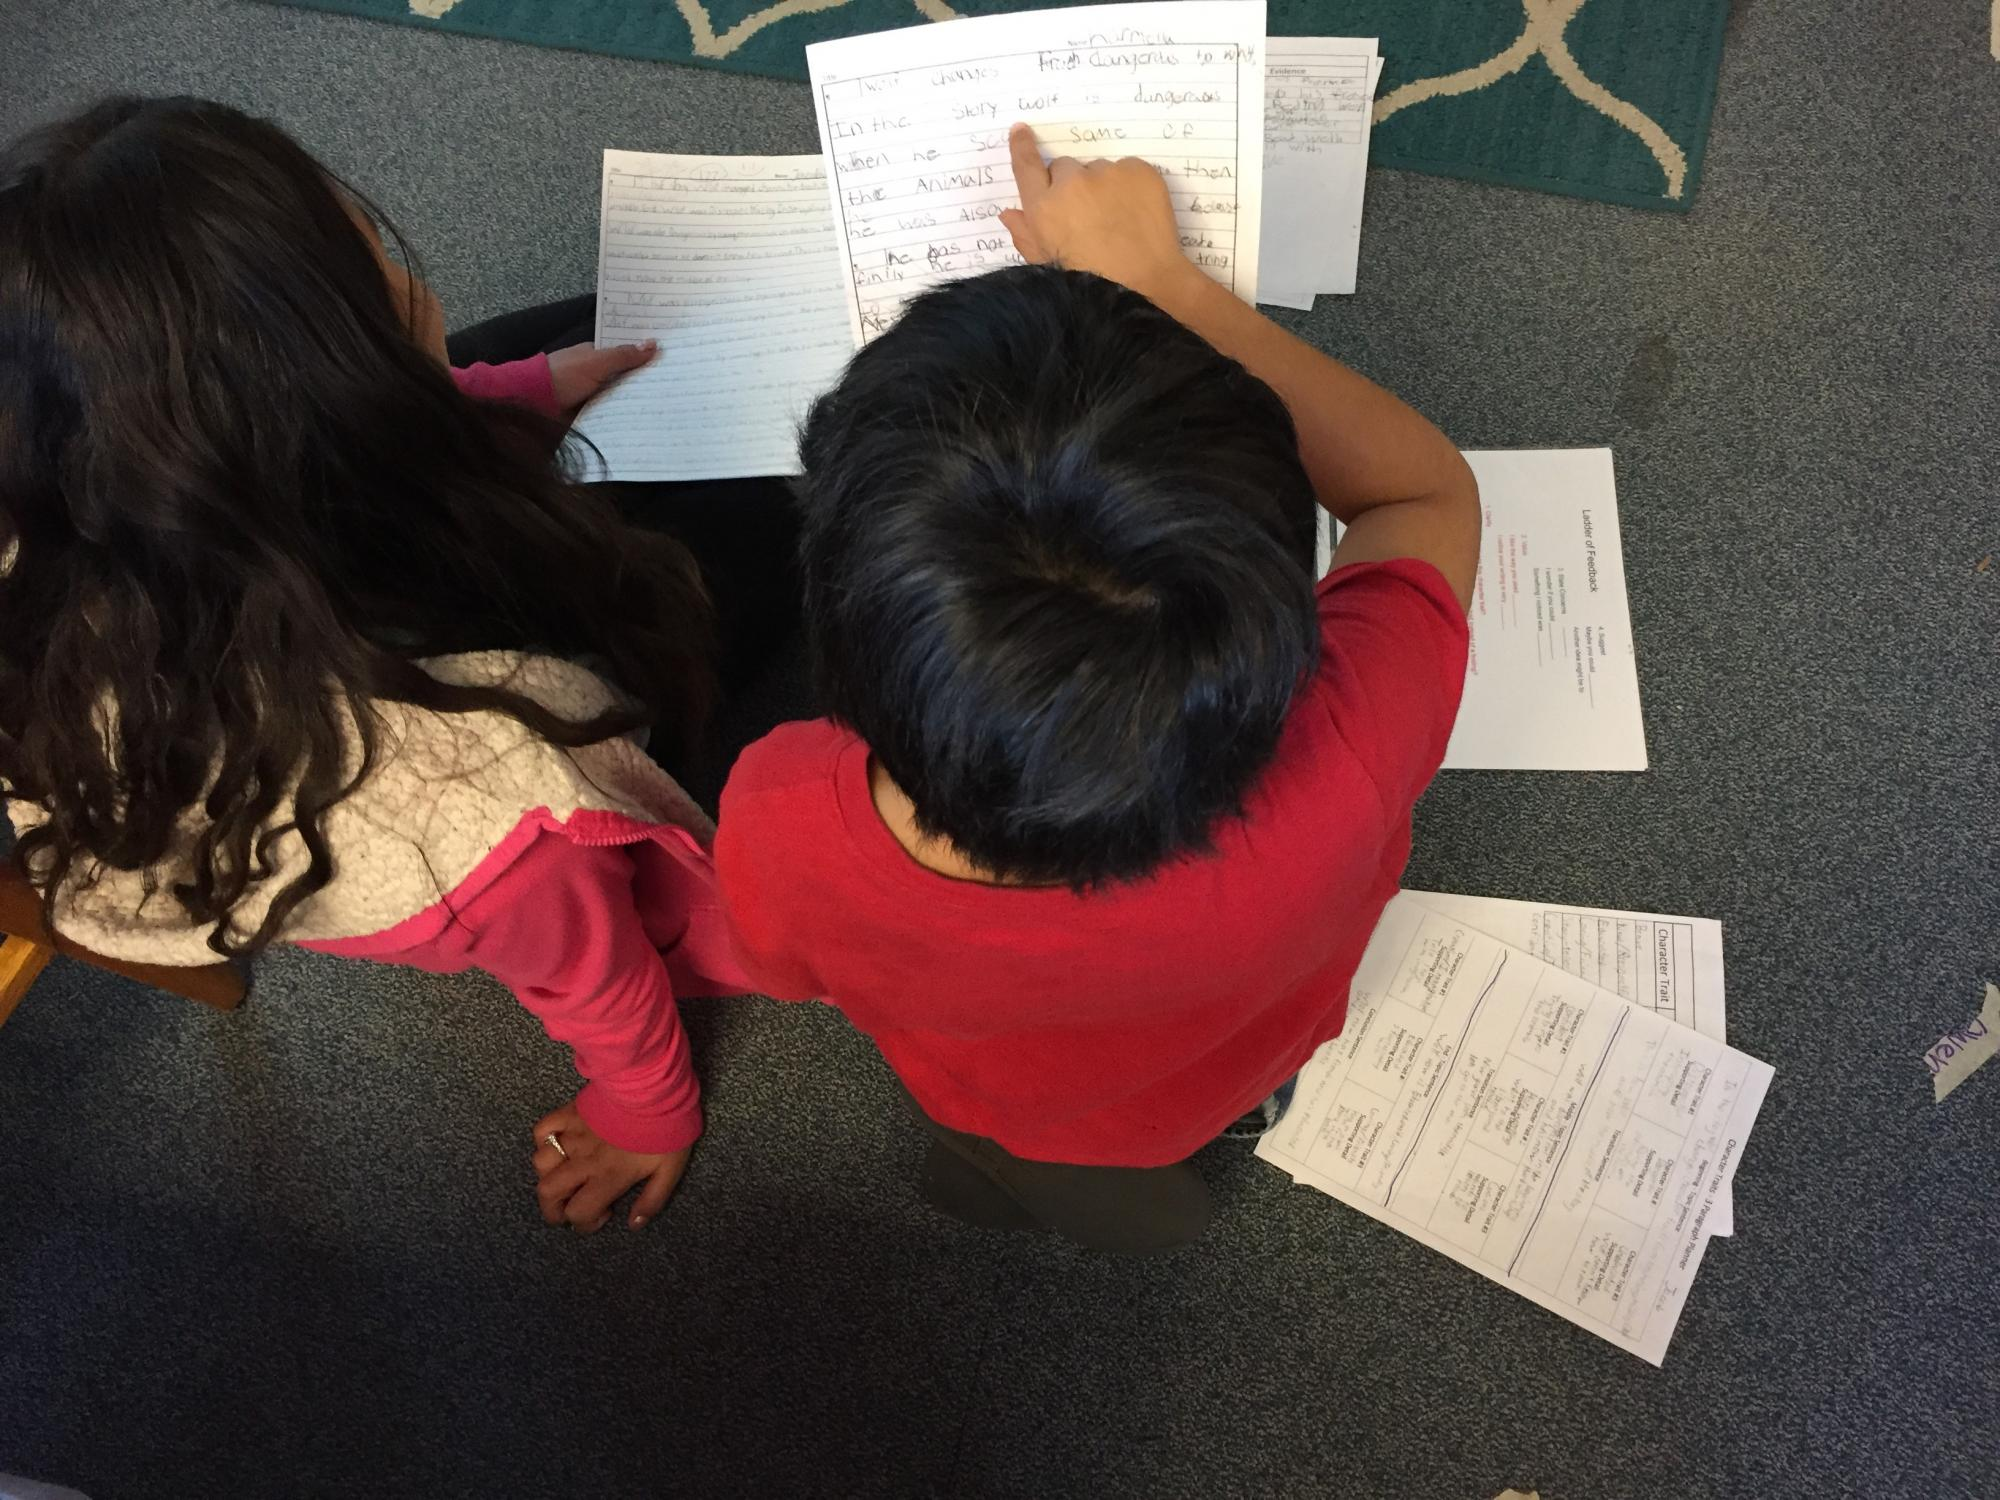 Two kids review work together